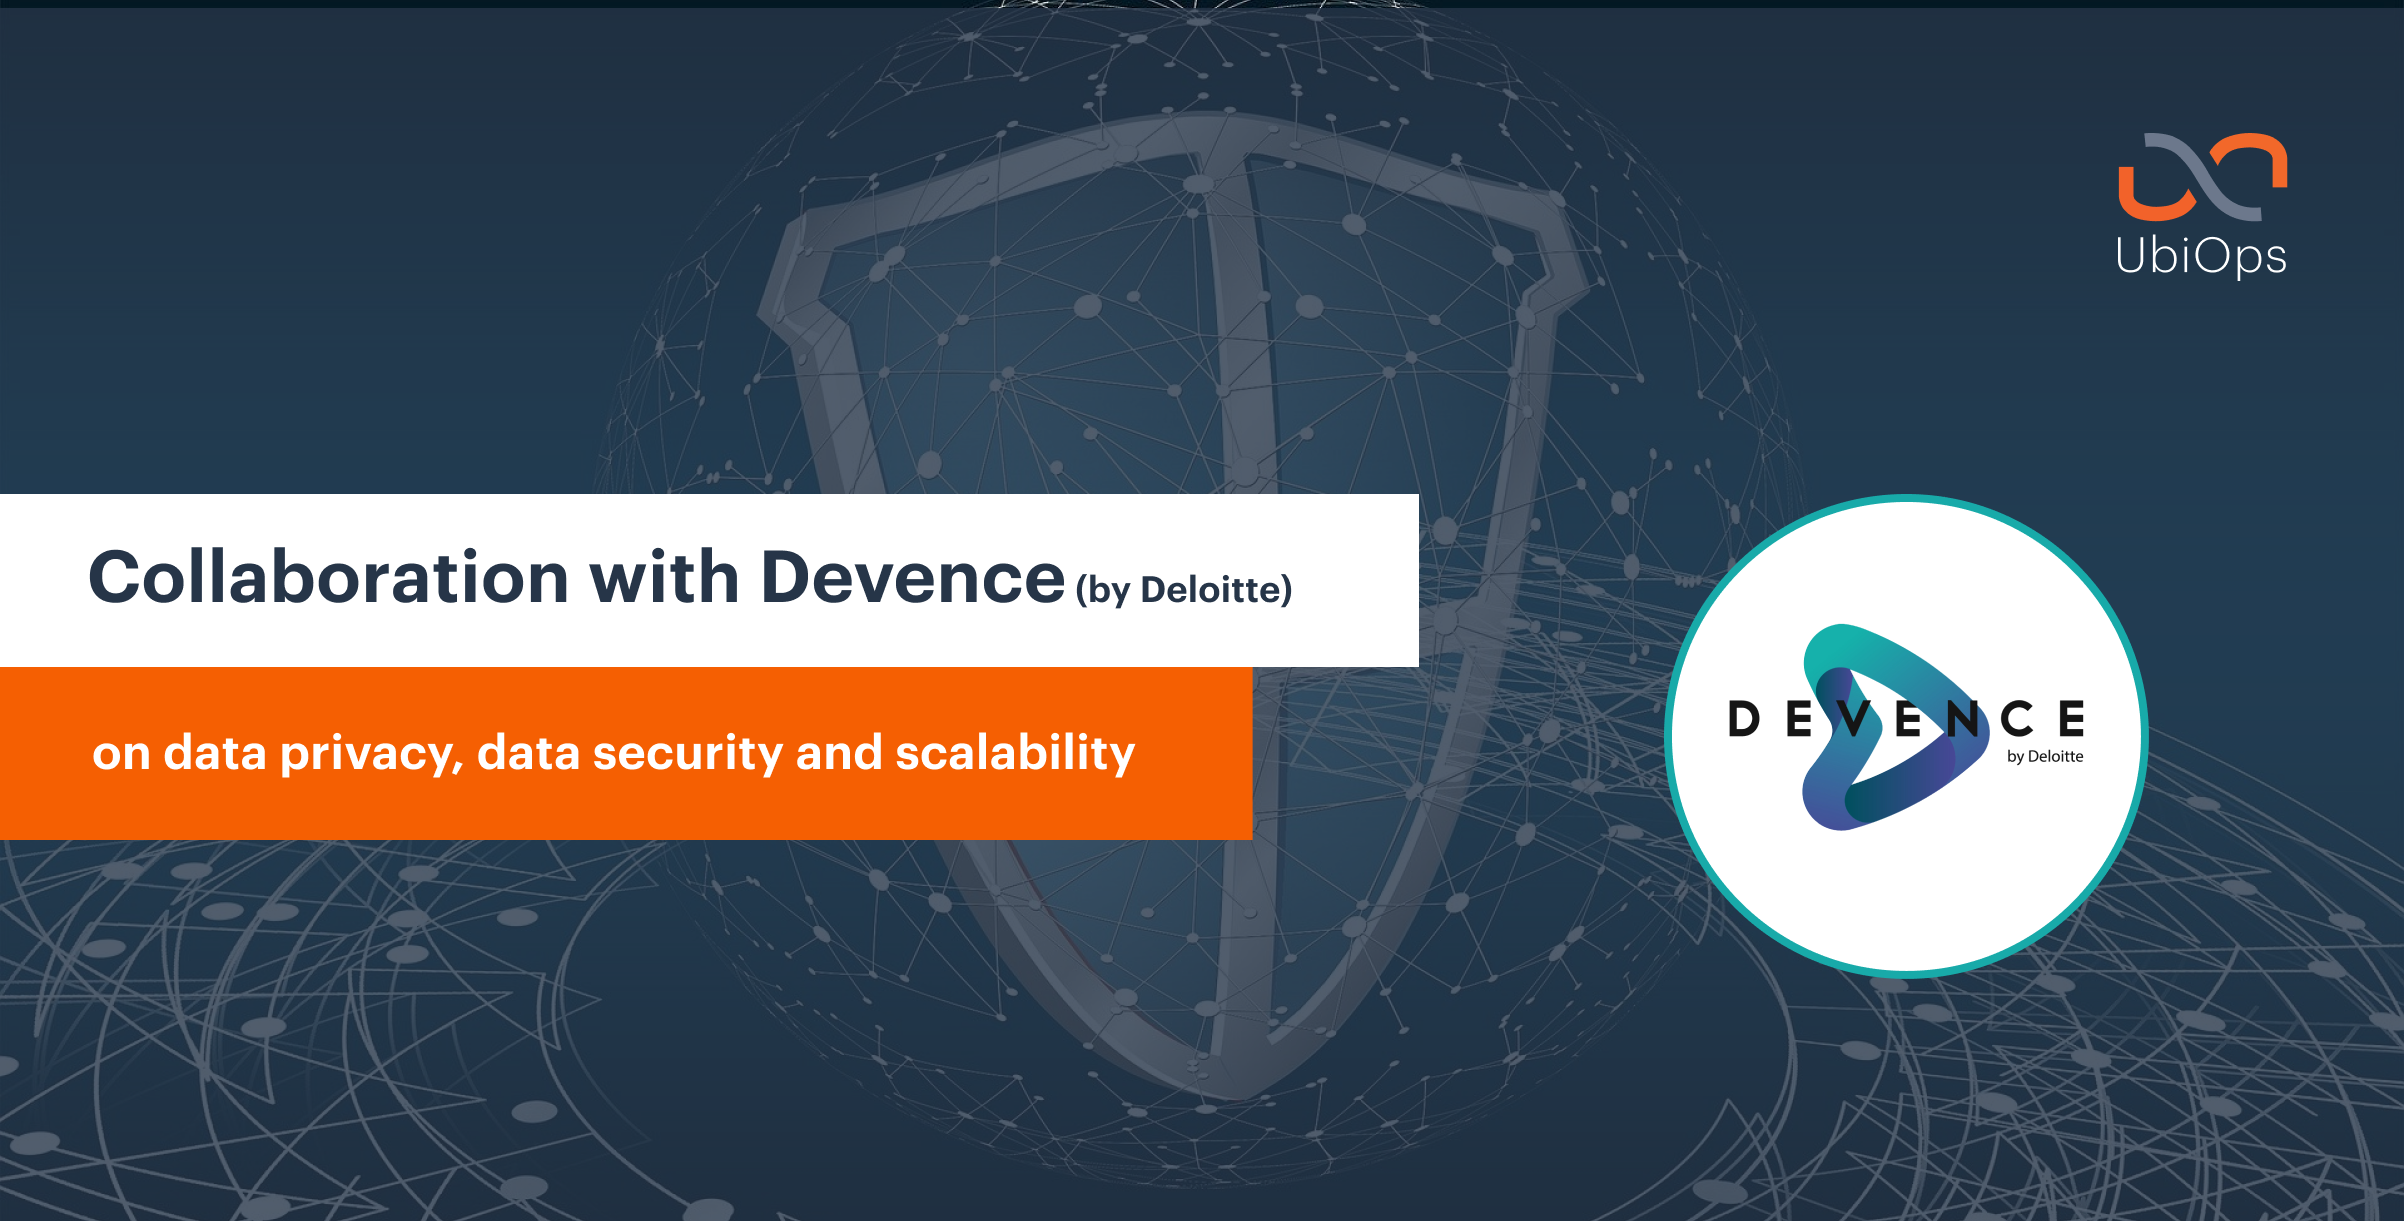 Collaboration Devence (by Deloitte) and UbiOps on data privacy, data security and scalability